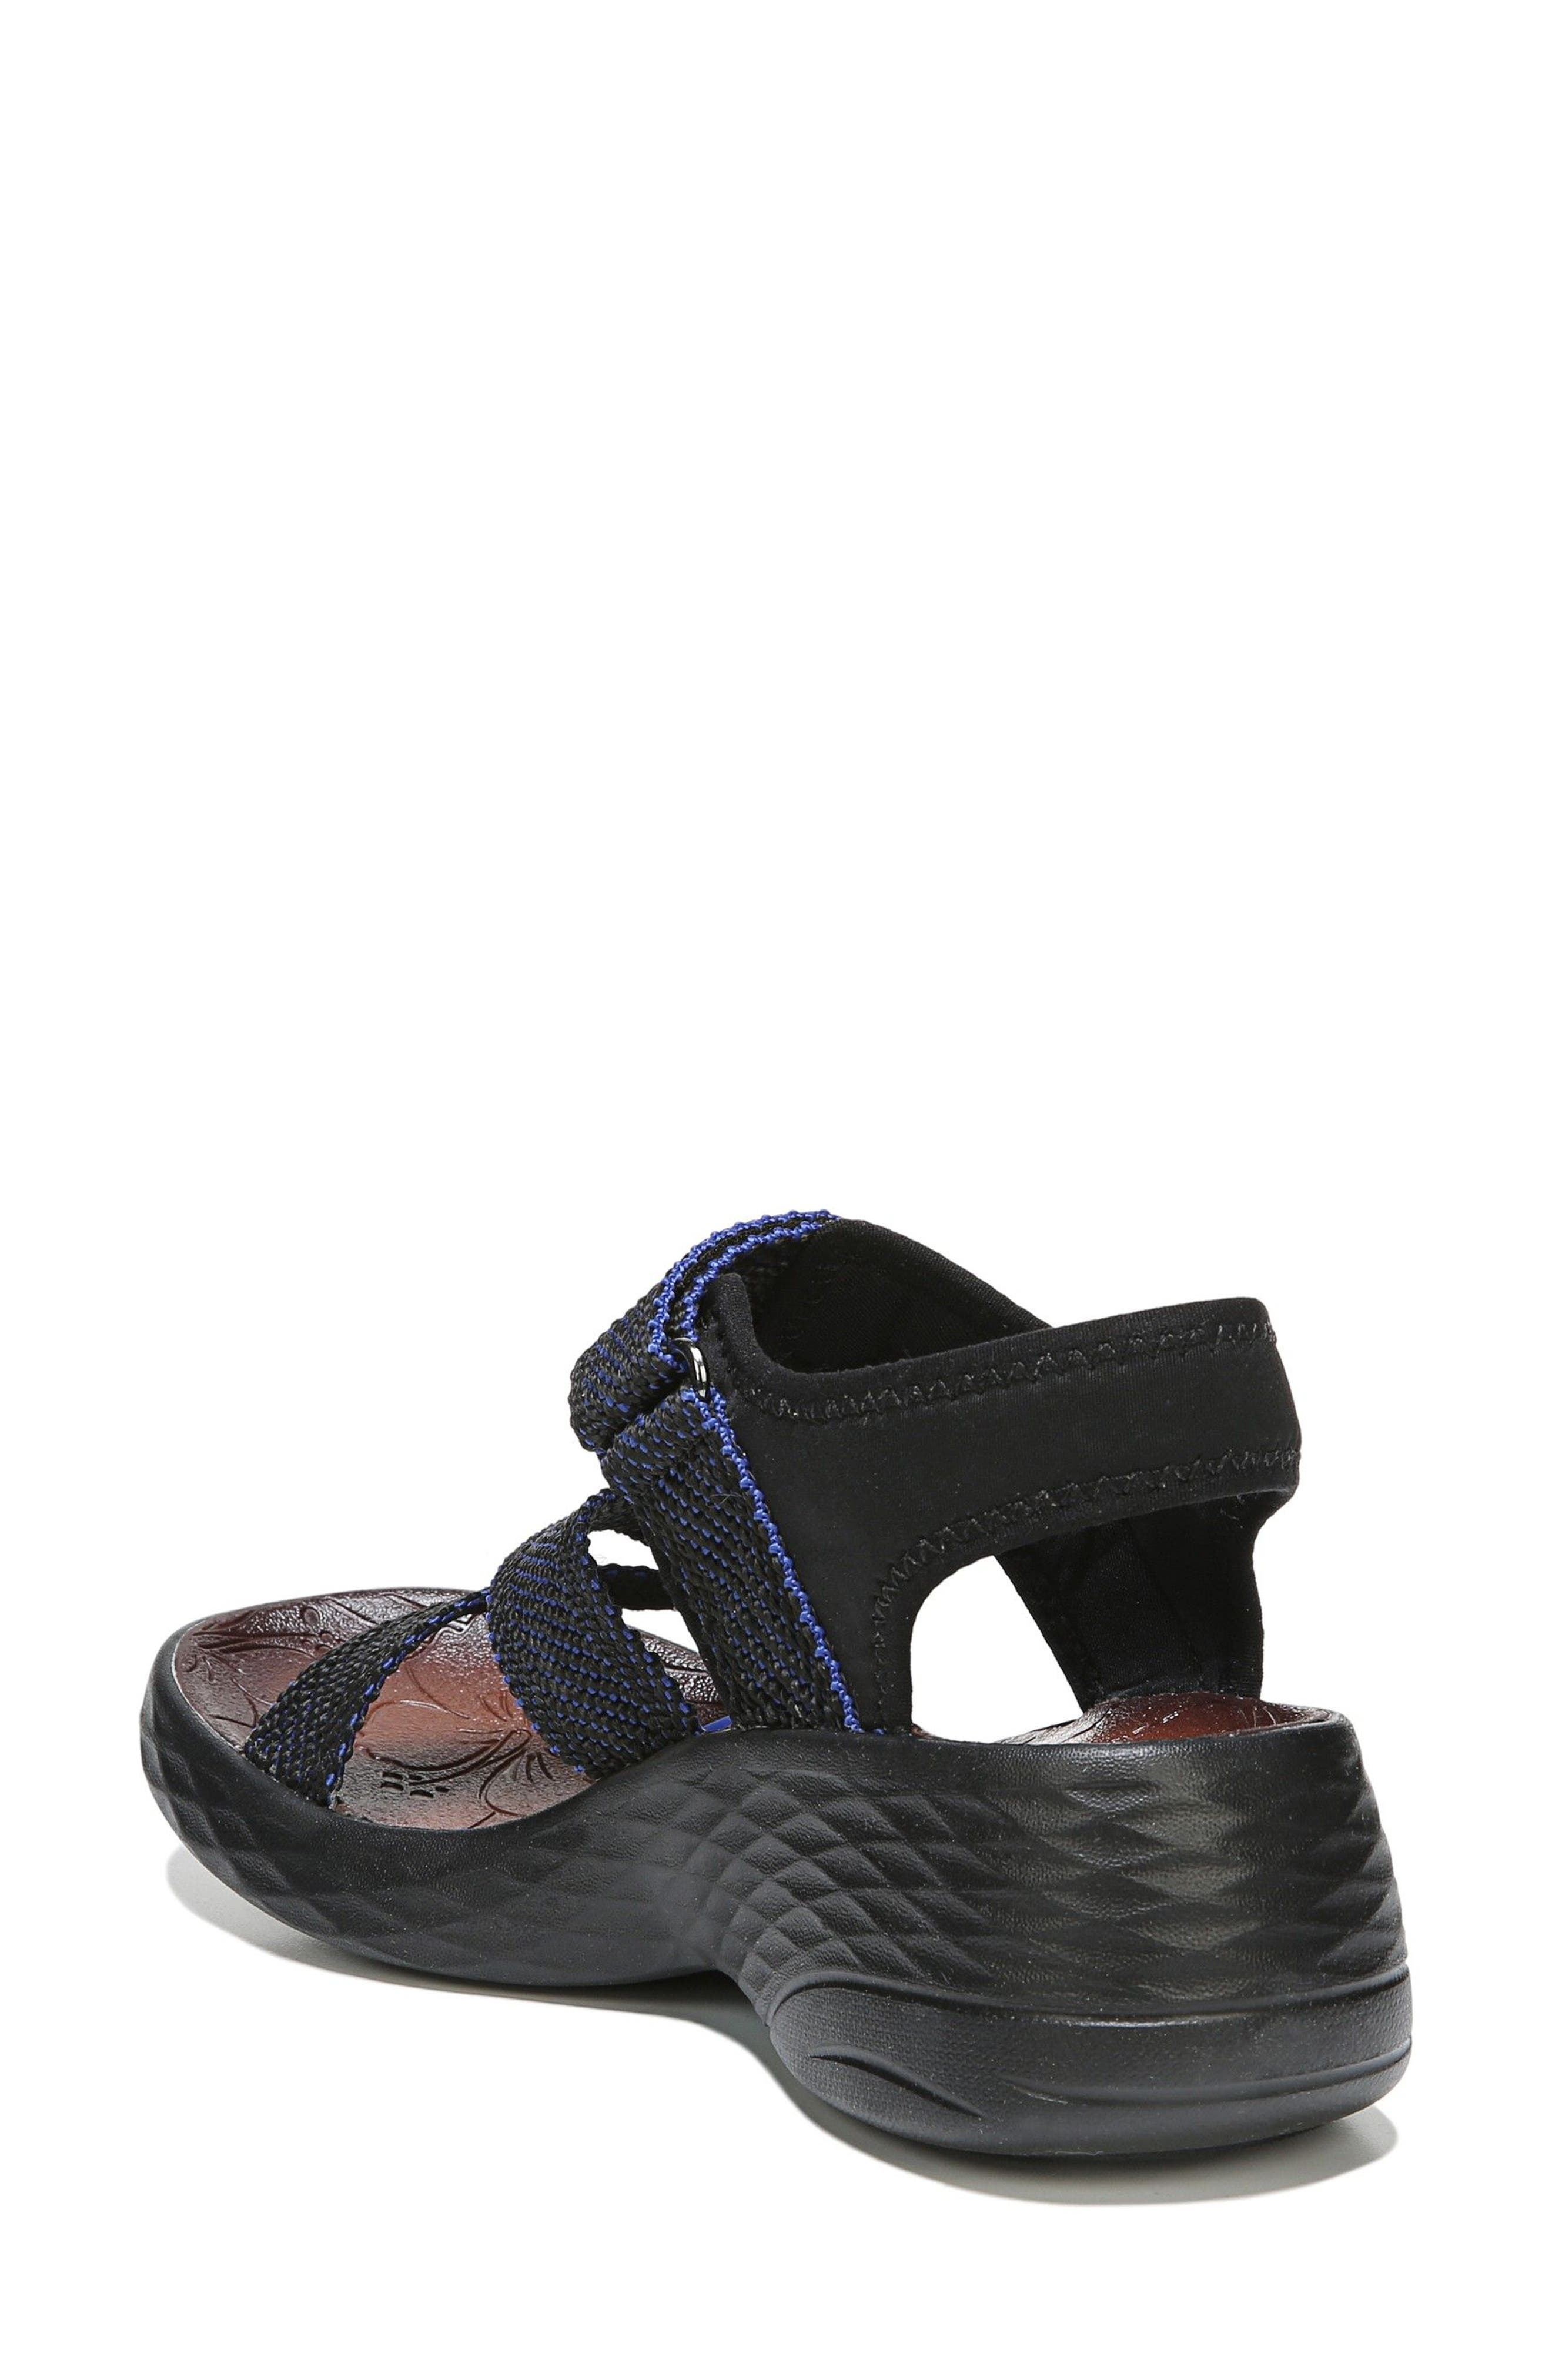 Jive Sandal,                             Alternate thumbnail 2, color,                             BLUE WEBBING FABRIC